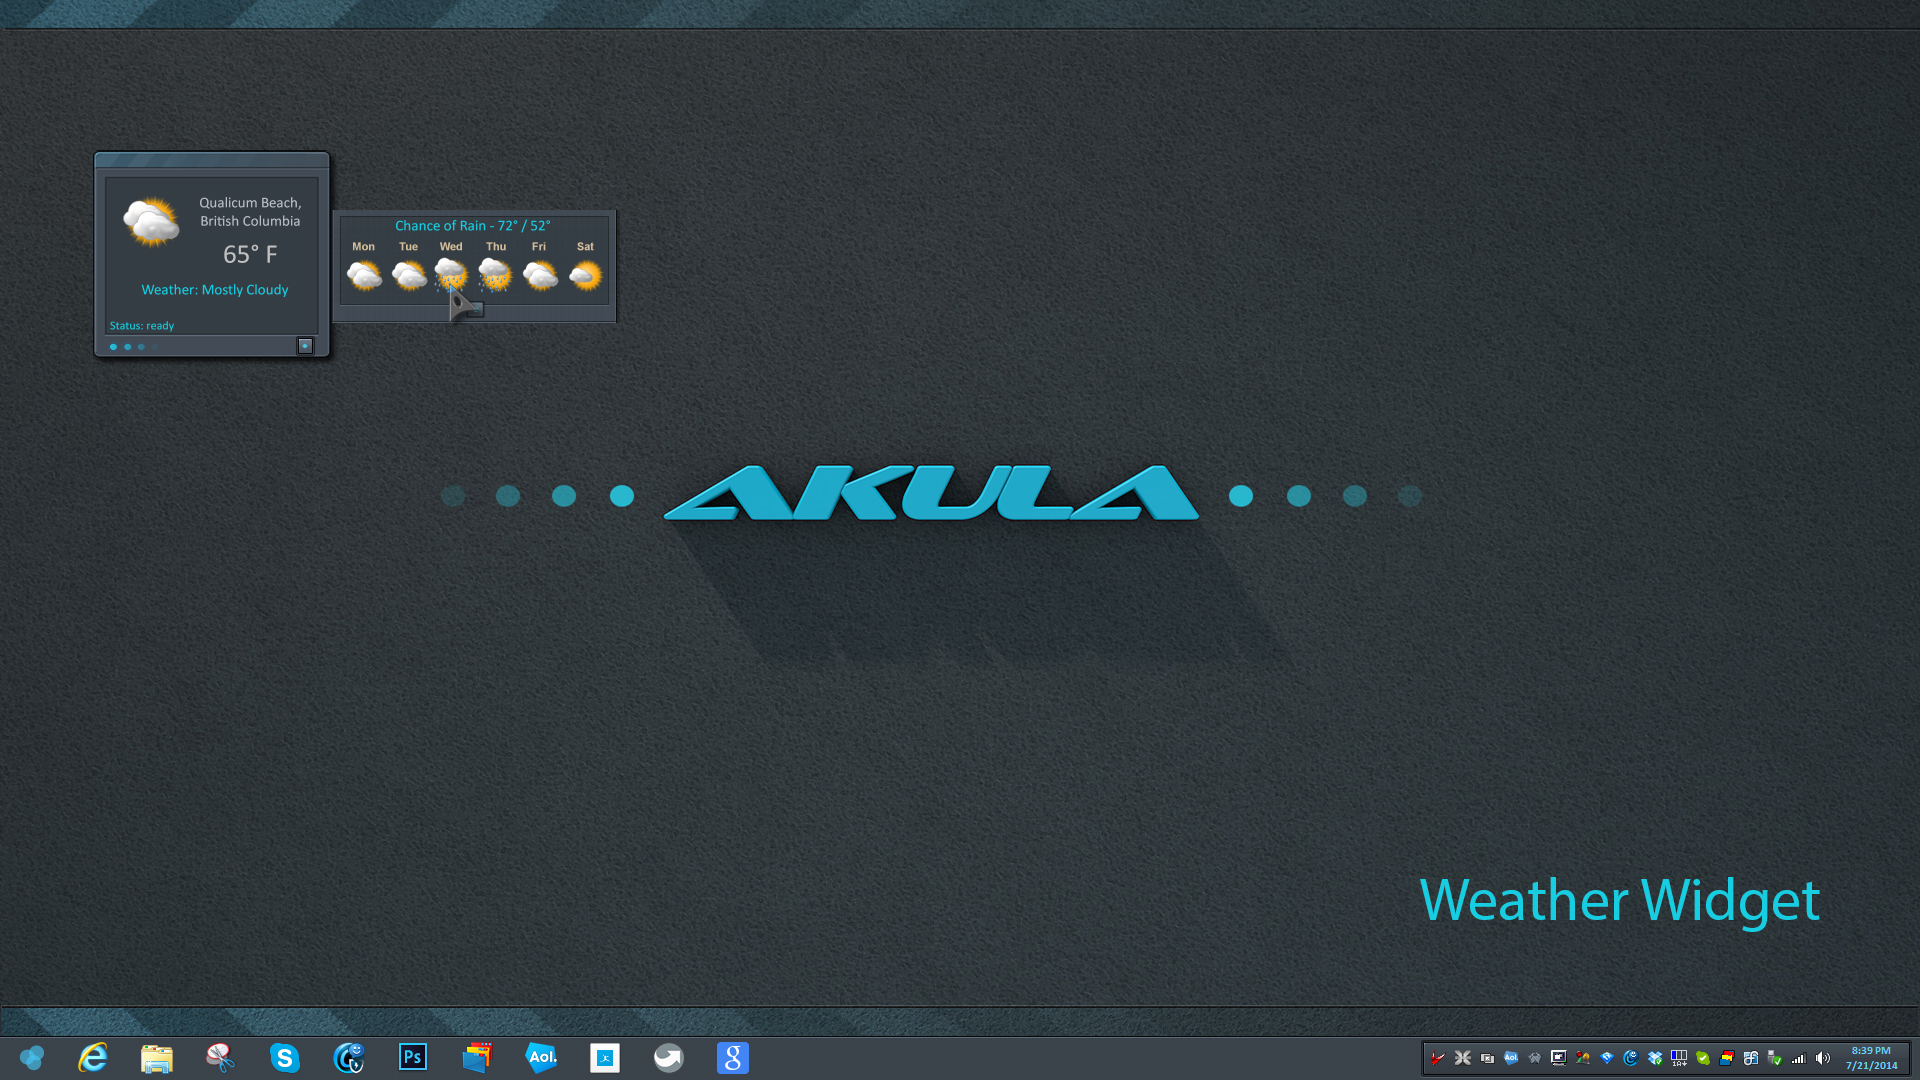 Akula Weather Widget